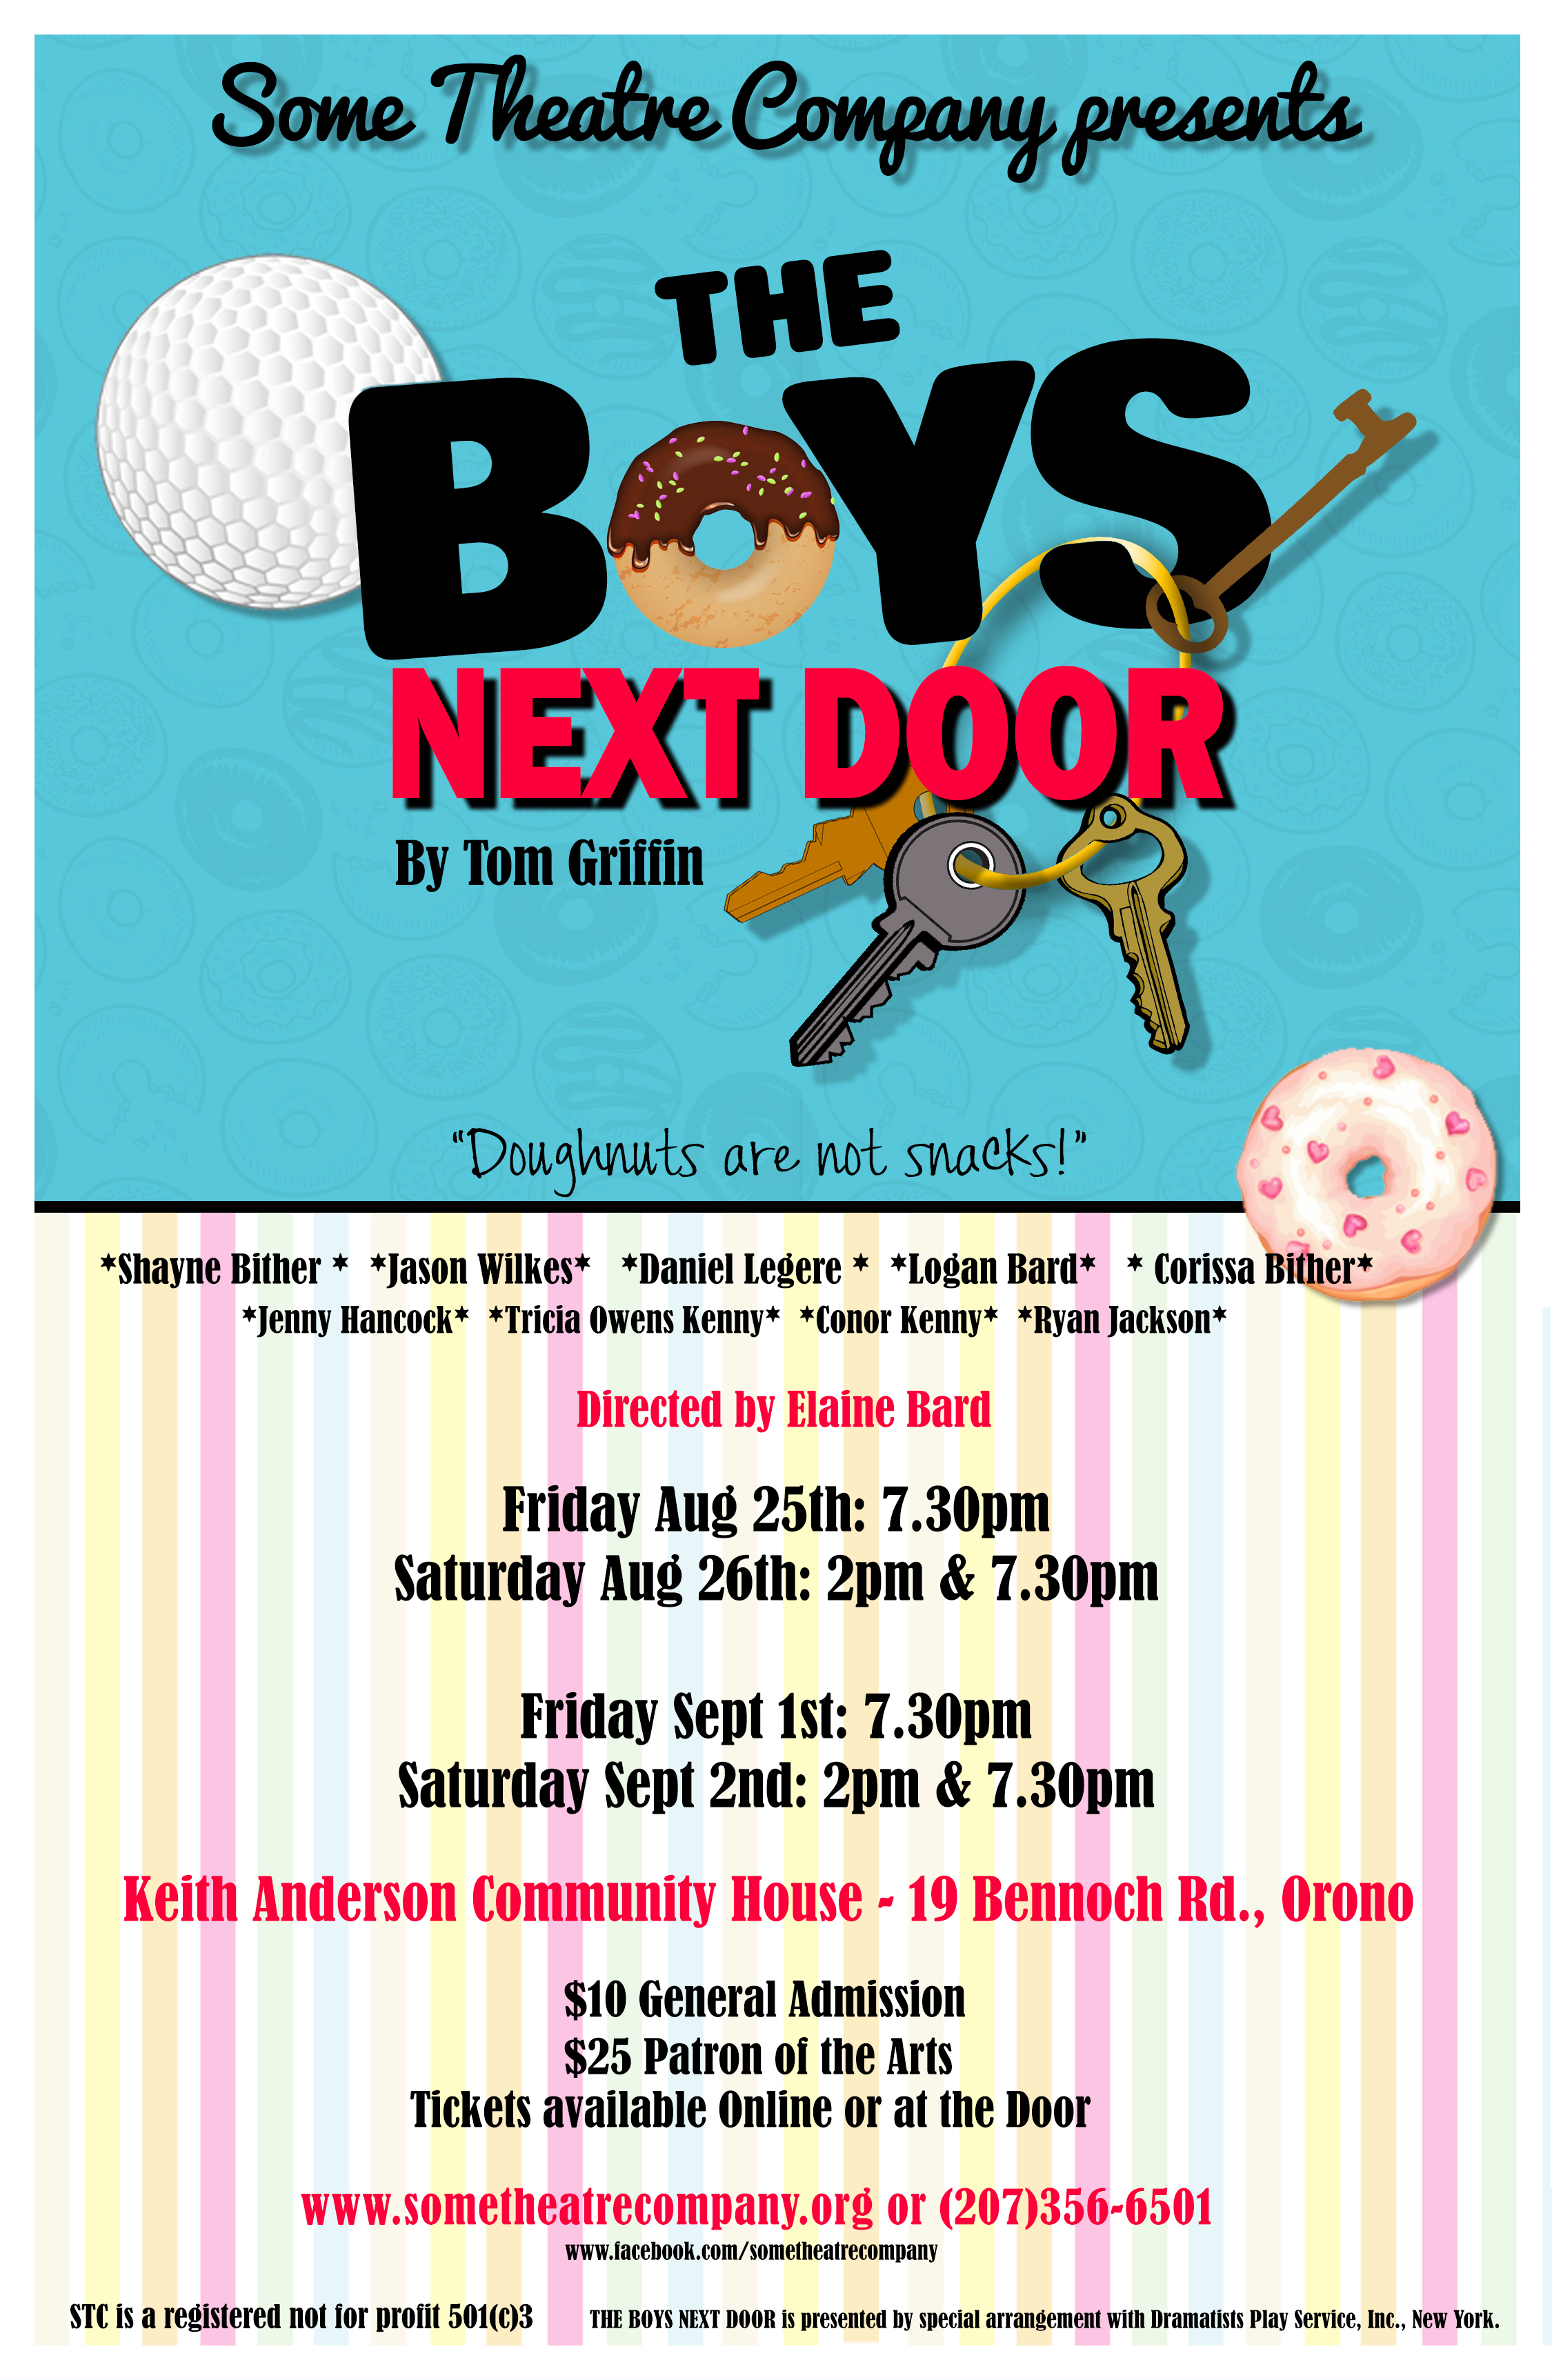 THE BOYS NEXT DOOR at Some Theatre Company